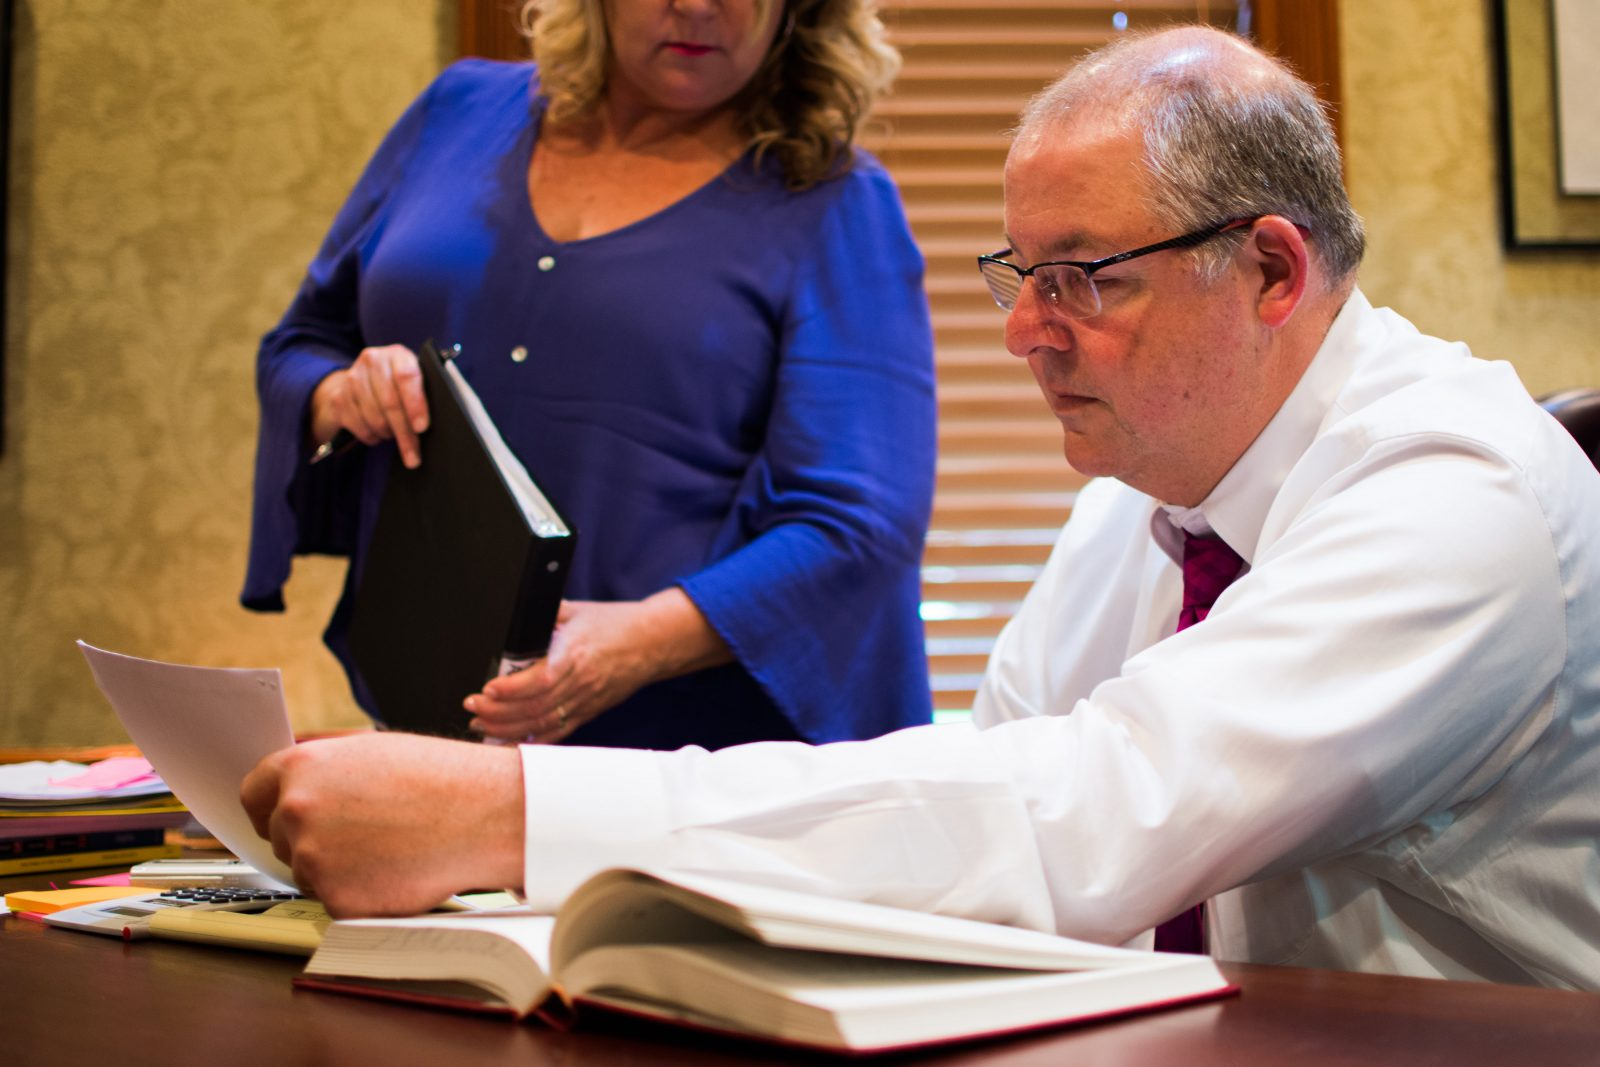 Charles J. Sticklen Jr. reading paperwork at Sticklen & Dreyer Law Firm